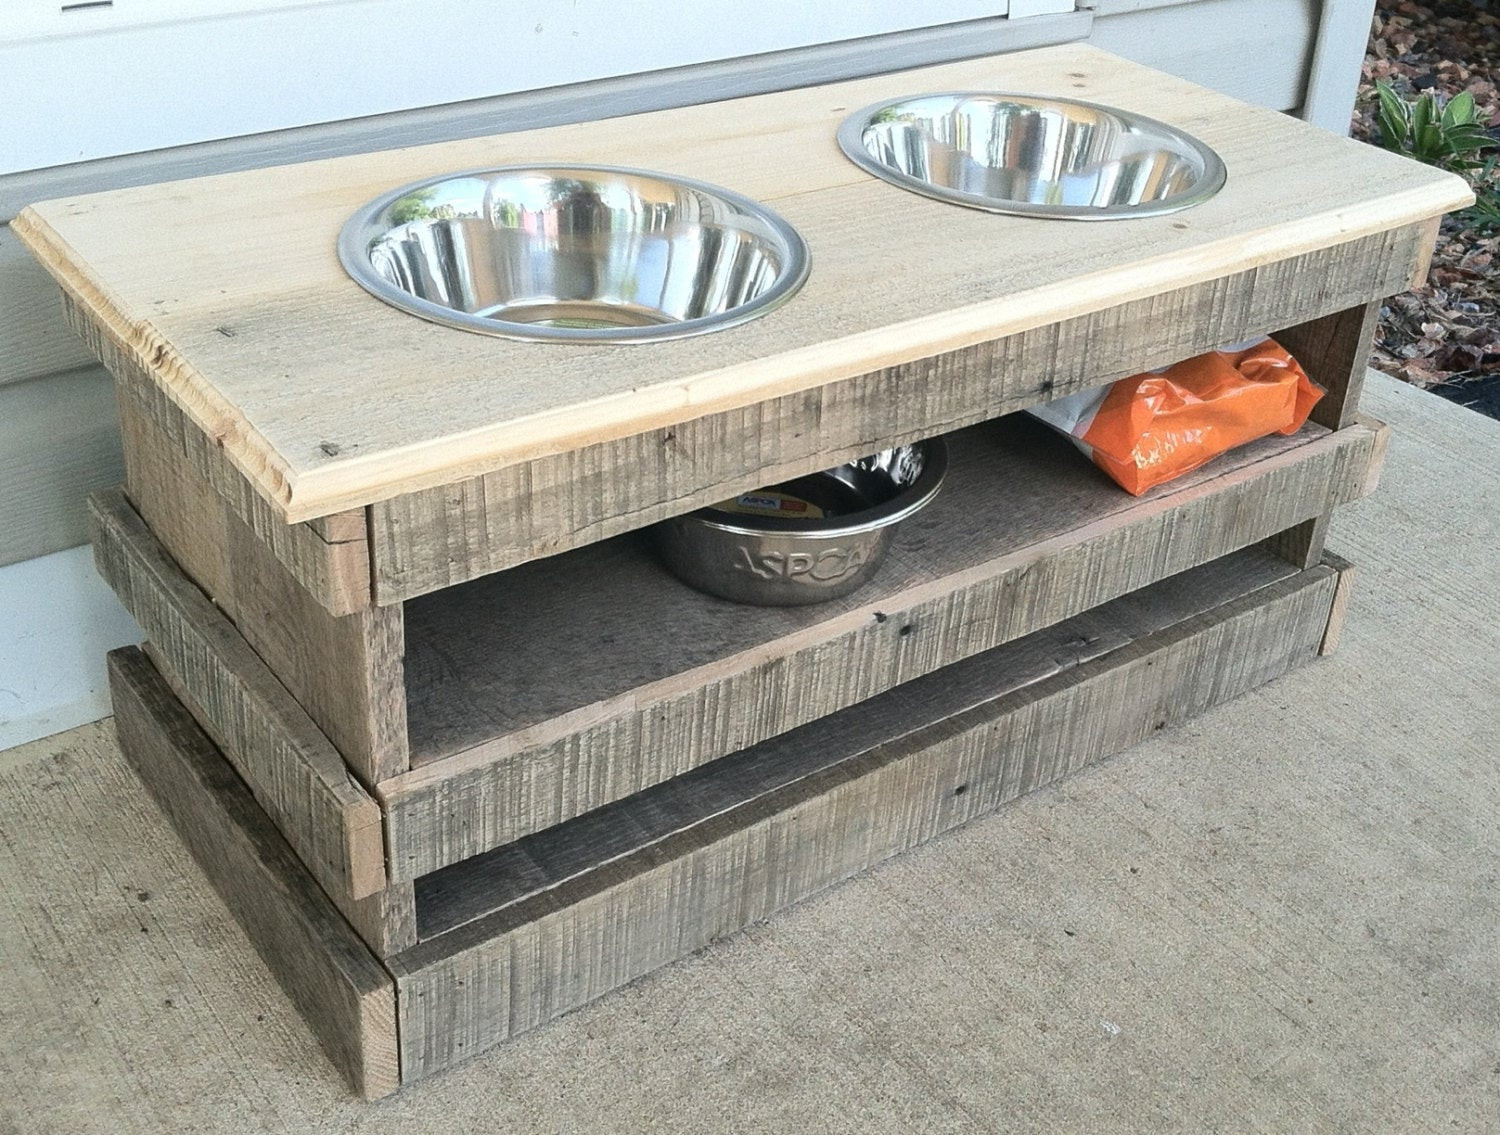 Best ideas about Raised Dog Bowls DIY . Save or Pin Lighting Now.